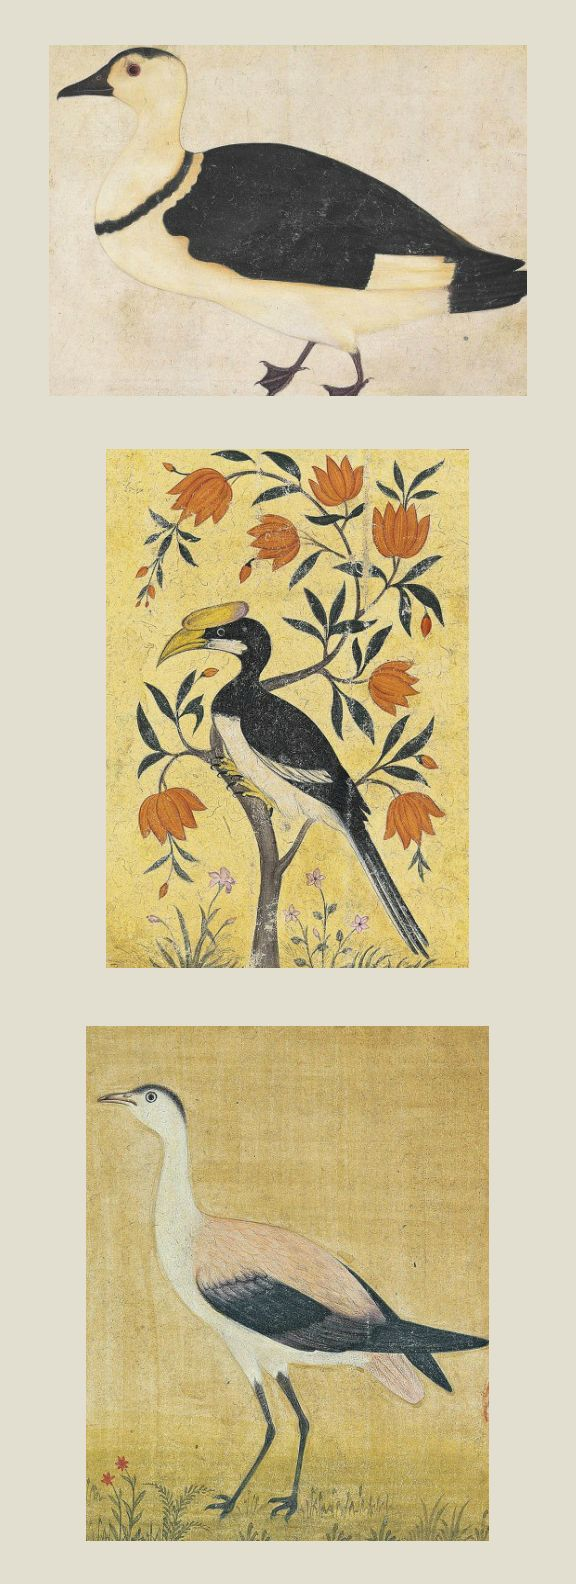 THREE PAINTINGS OF INDIAN BIRDS   INDIA, 19TH CENTURY OR LATER   Opaque pigments on paper, depicting a hornbill perched on a blossoming tree with large orange flowers, a black and white duck and a crane, each facing left, laid down on gilt cardboard with speckled borders, each individually mounted  Hornbill: painting 5 5/8 x 4in. (14.3 x 10.1cm.); panel 10 1/8 x 8½in. (22.7 x 21.5cm.)